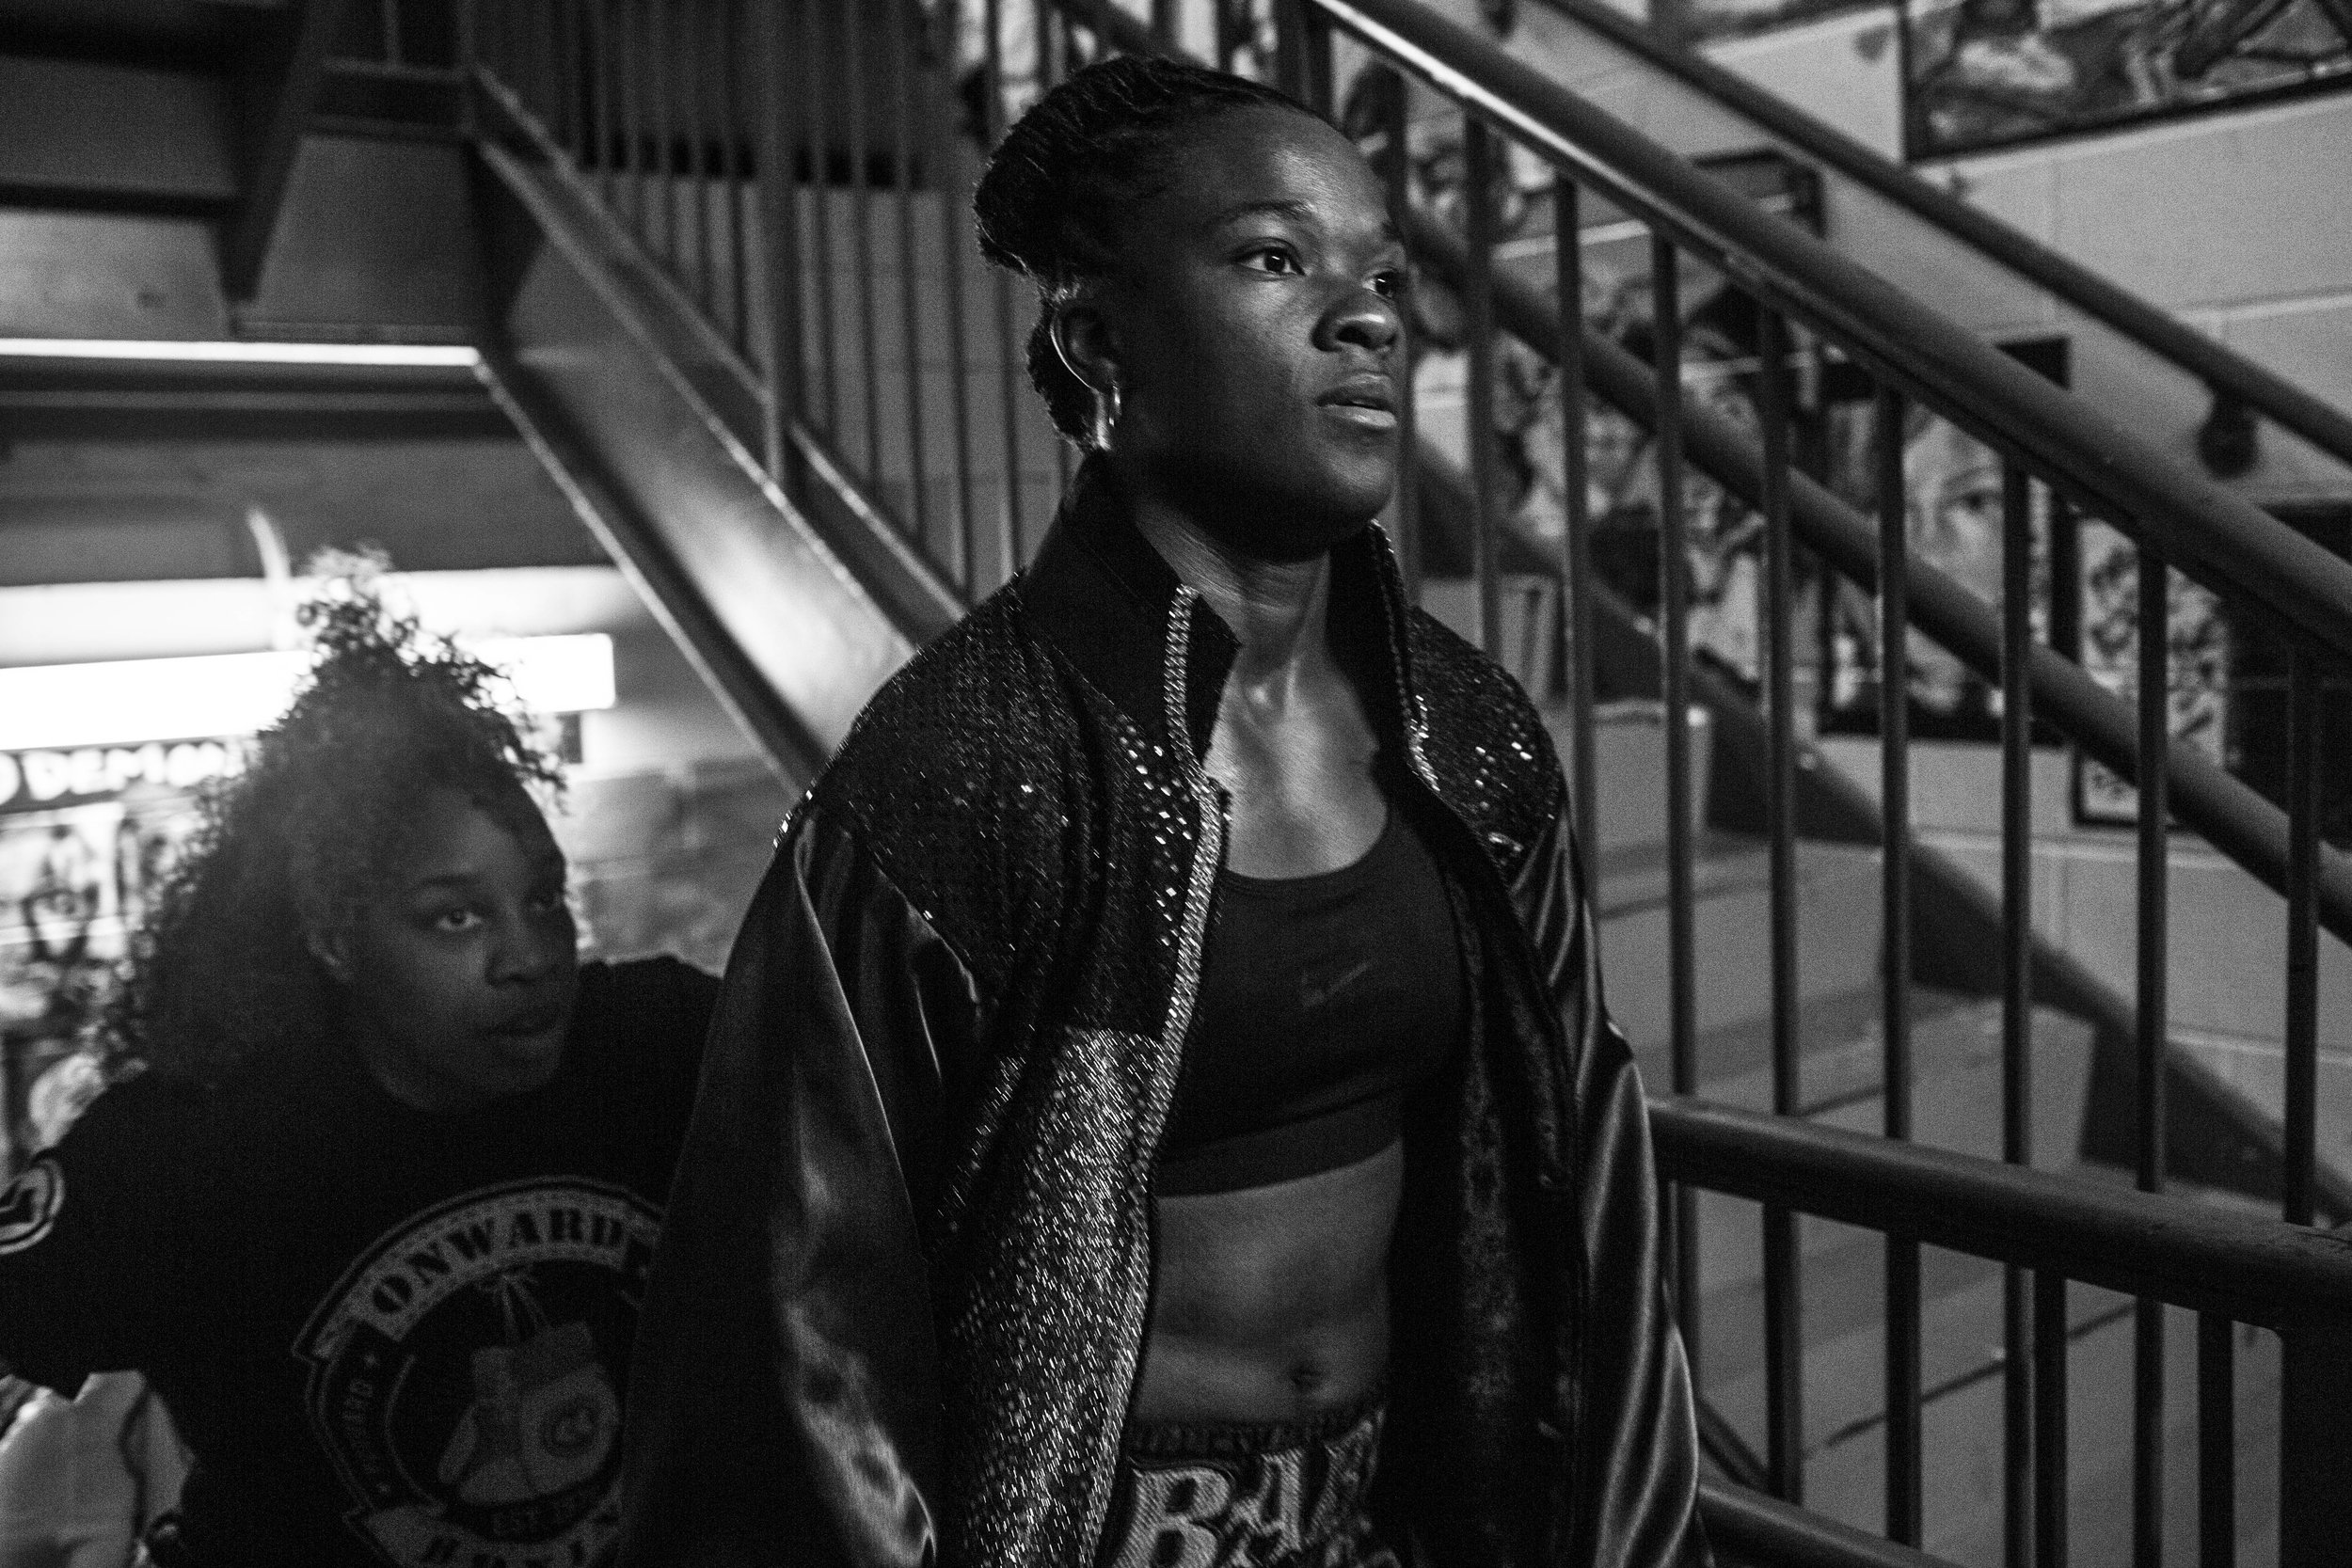 Tiara makes her way into the ring at the Howard Theatre, where she won by knockout in the second round, maintaining a 3-0 record.